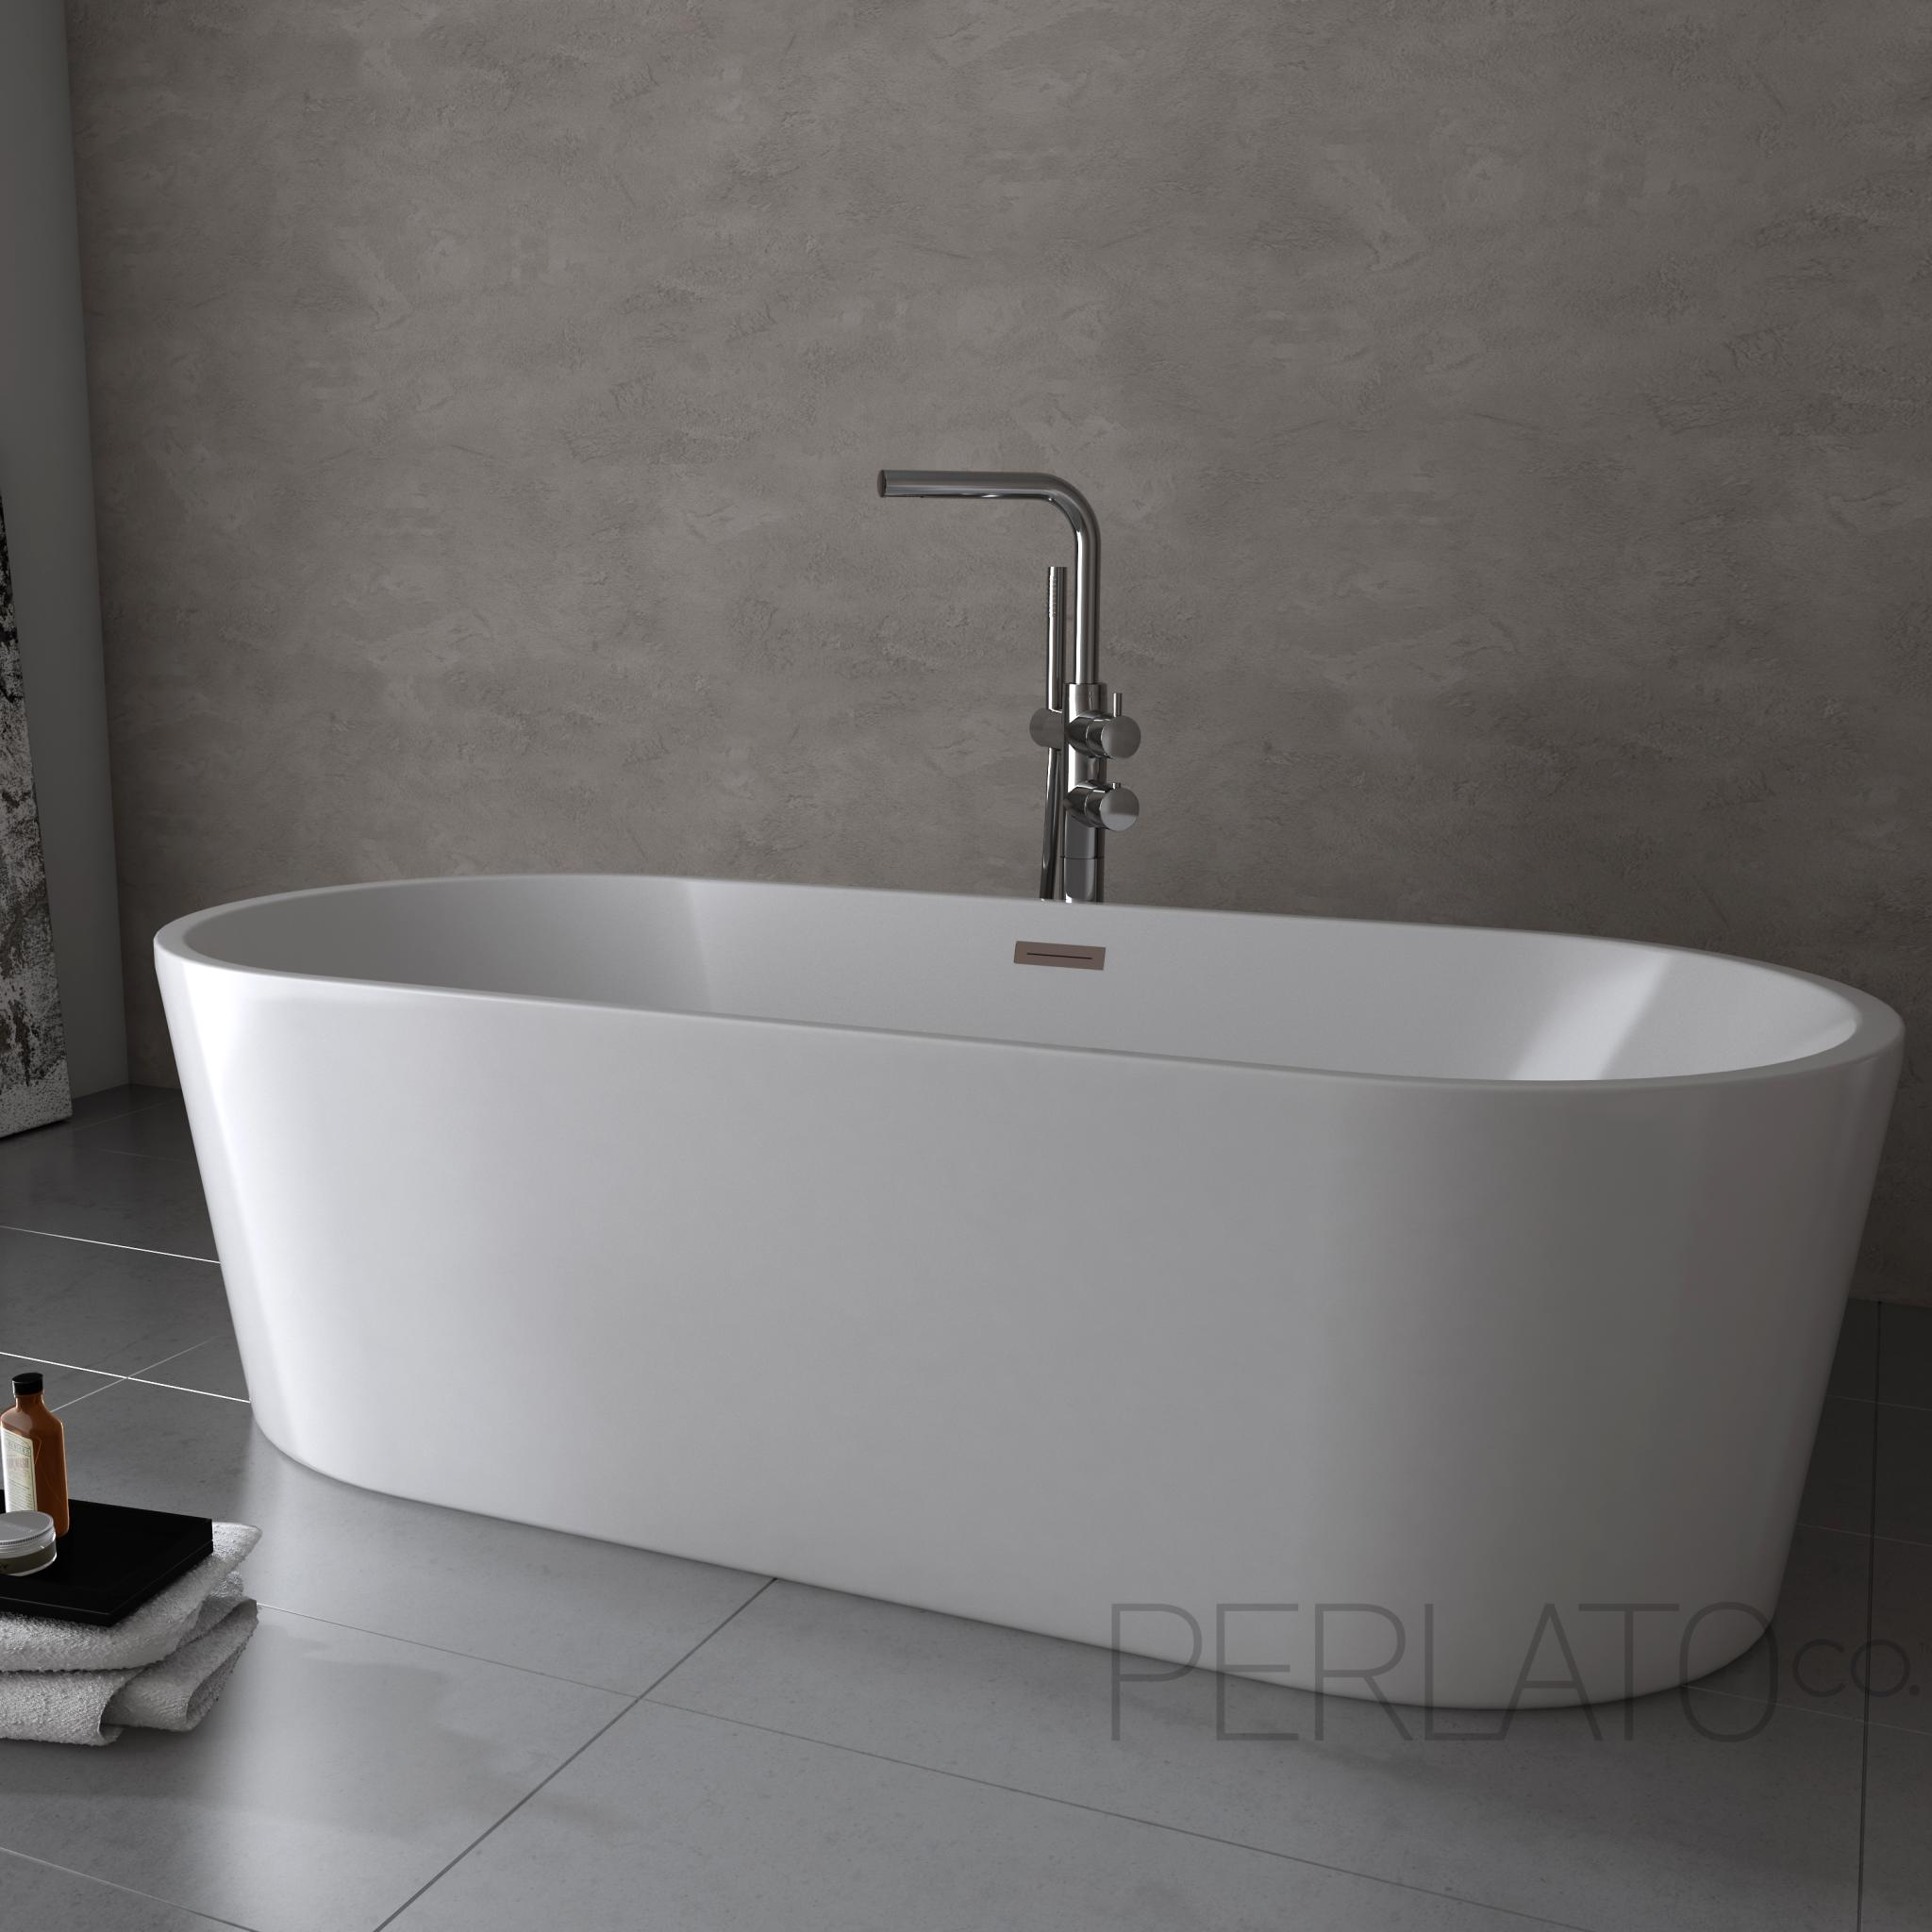 pretty u0026 practical soaker tubs by perlato